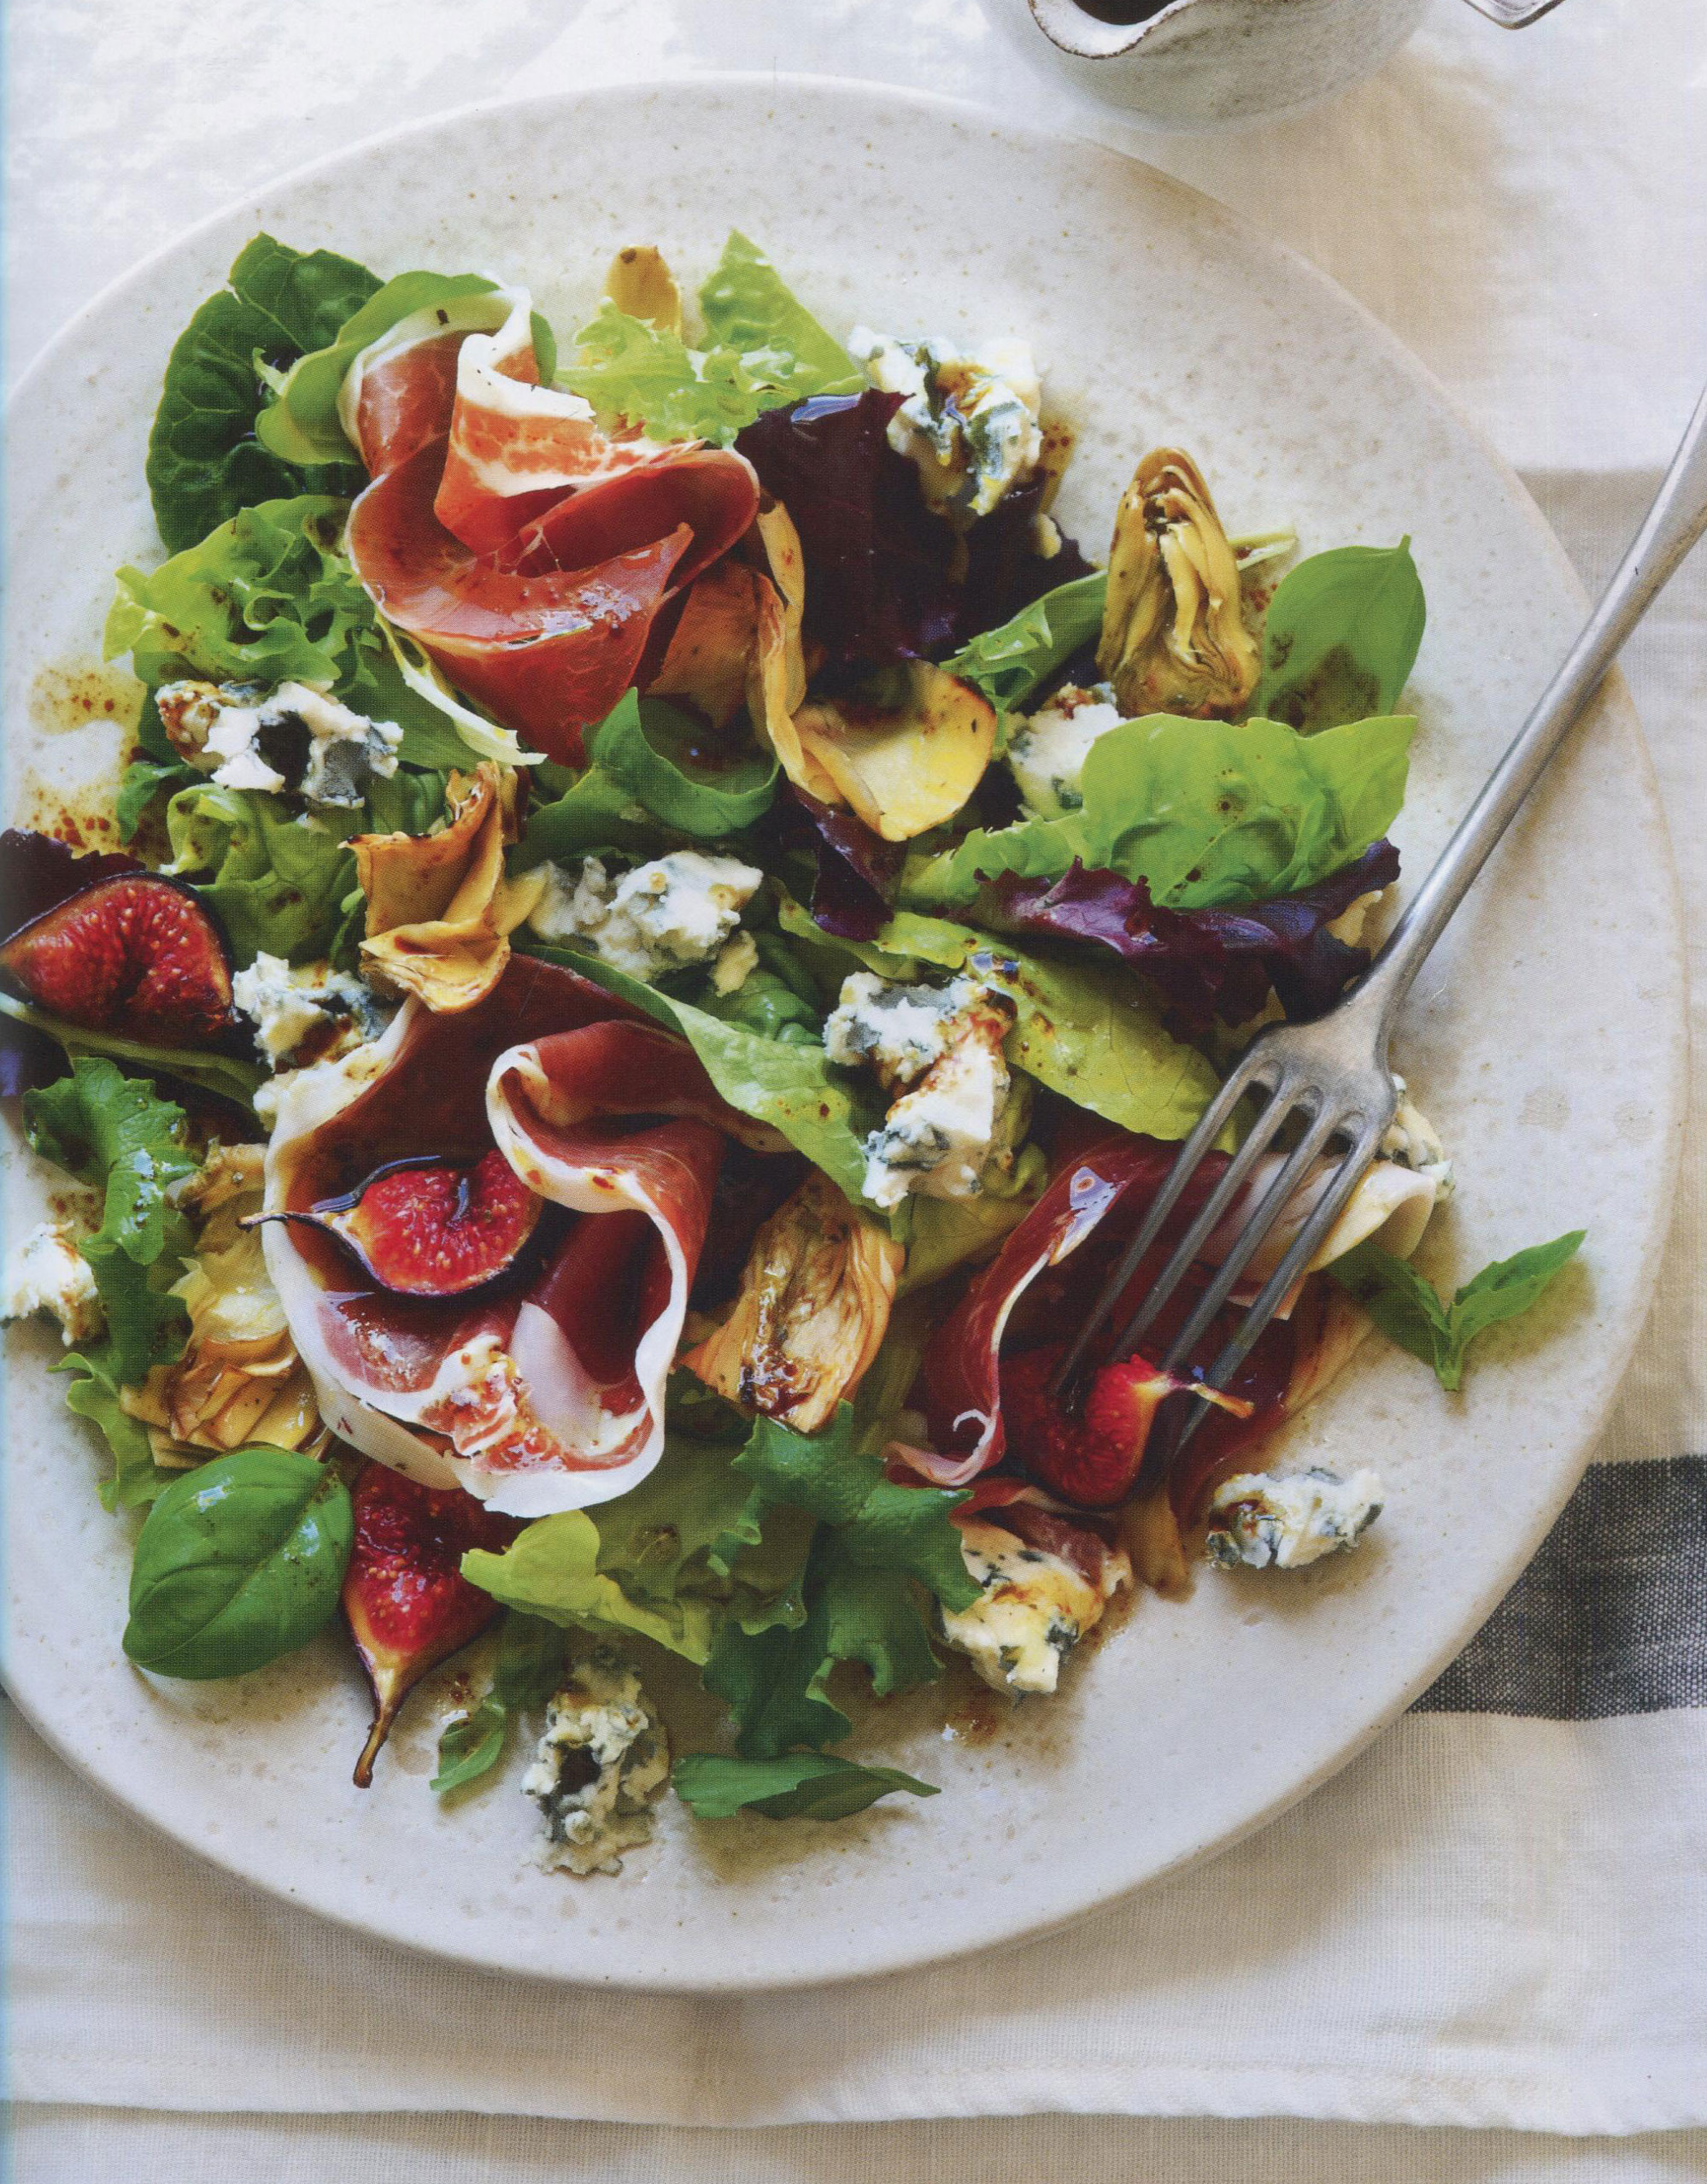 Prosciutto, Artichoke, Fig and Roquefort Salad with Balsamic Dressing